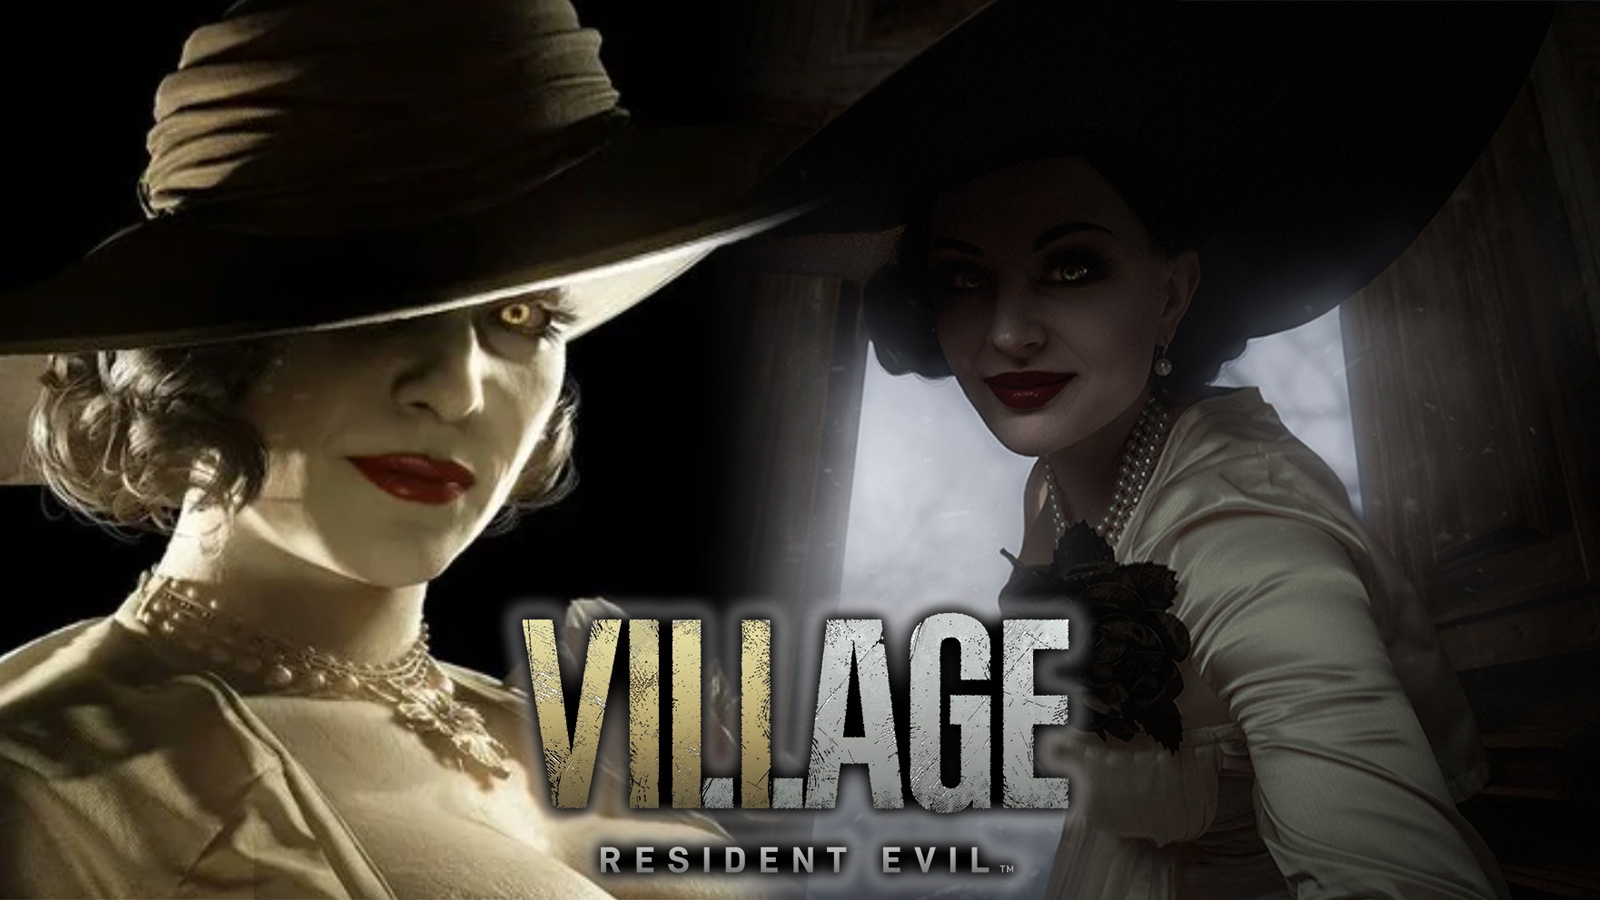 Screenshot of tall vampire lady from Resident Evil Village next to cosplayer.